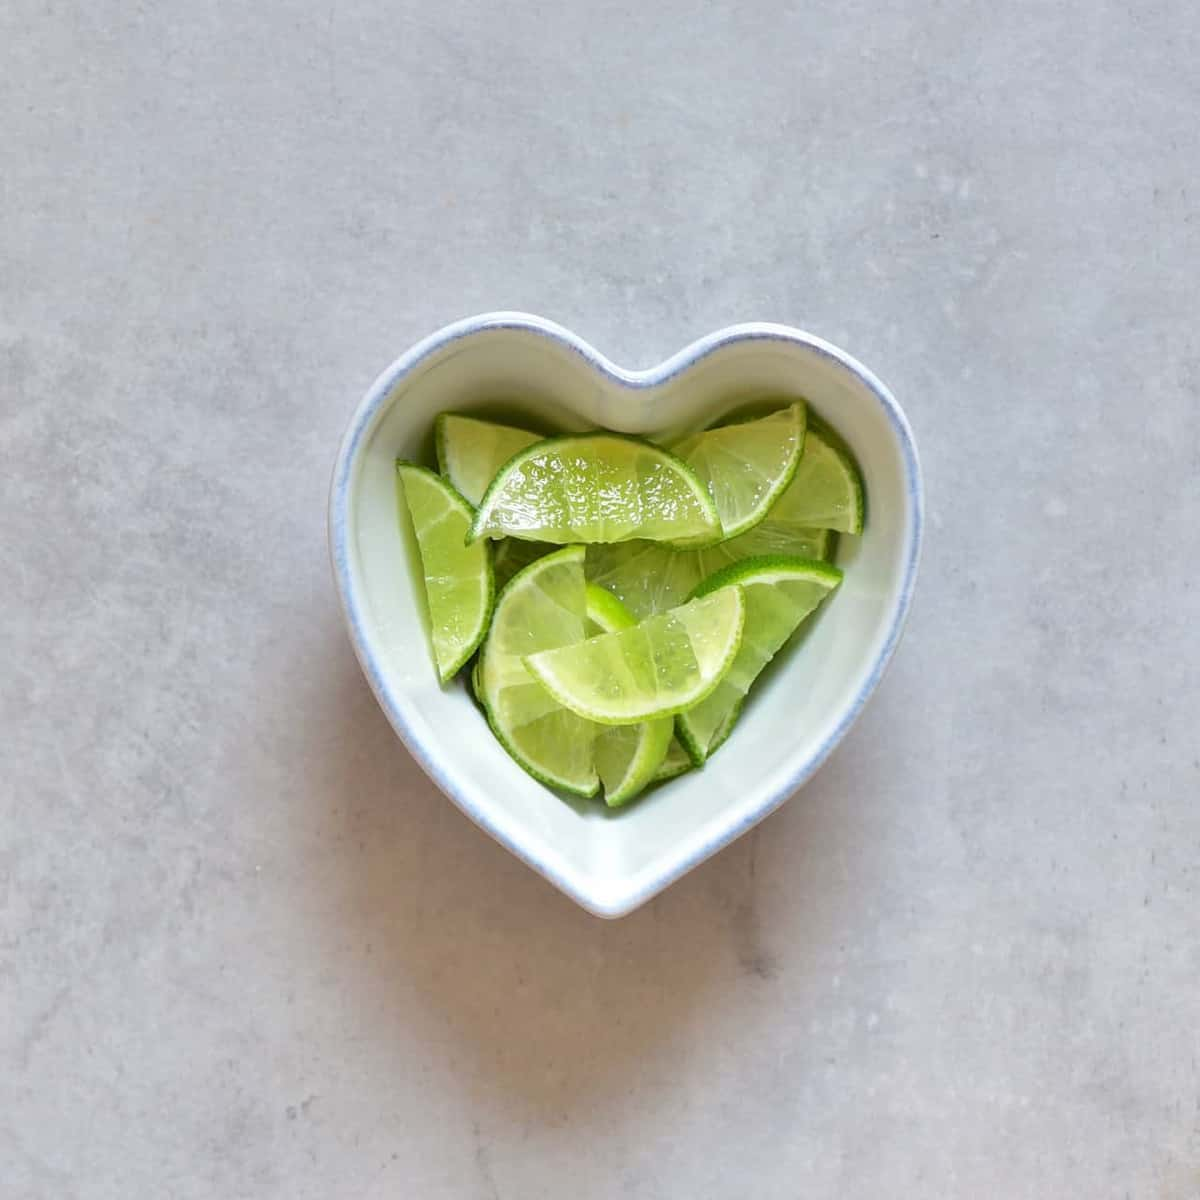 wedges of lime in a bowl